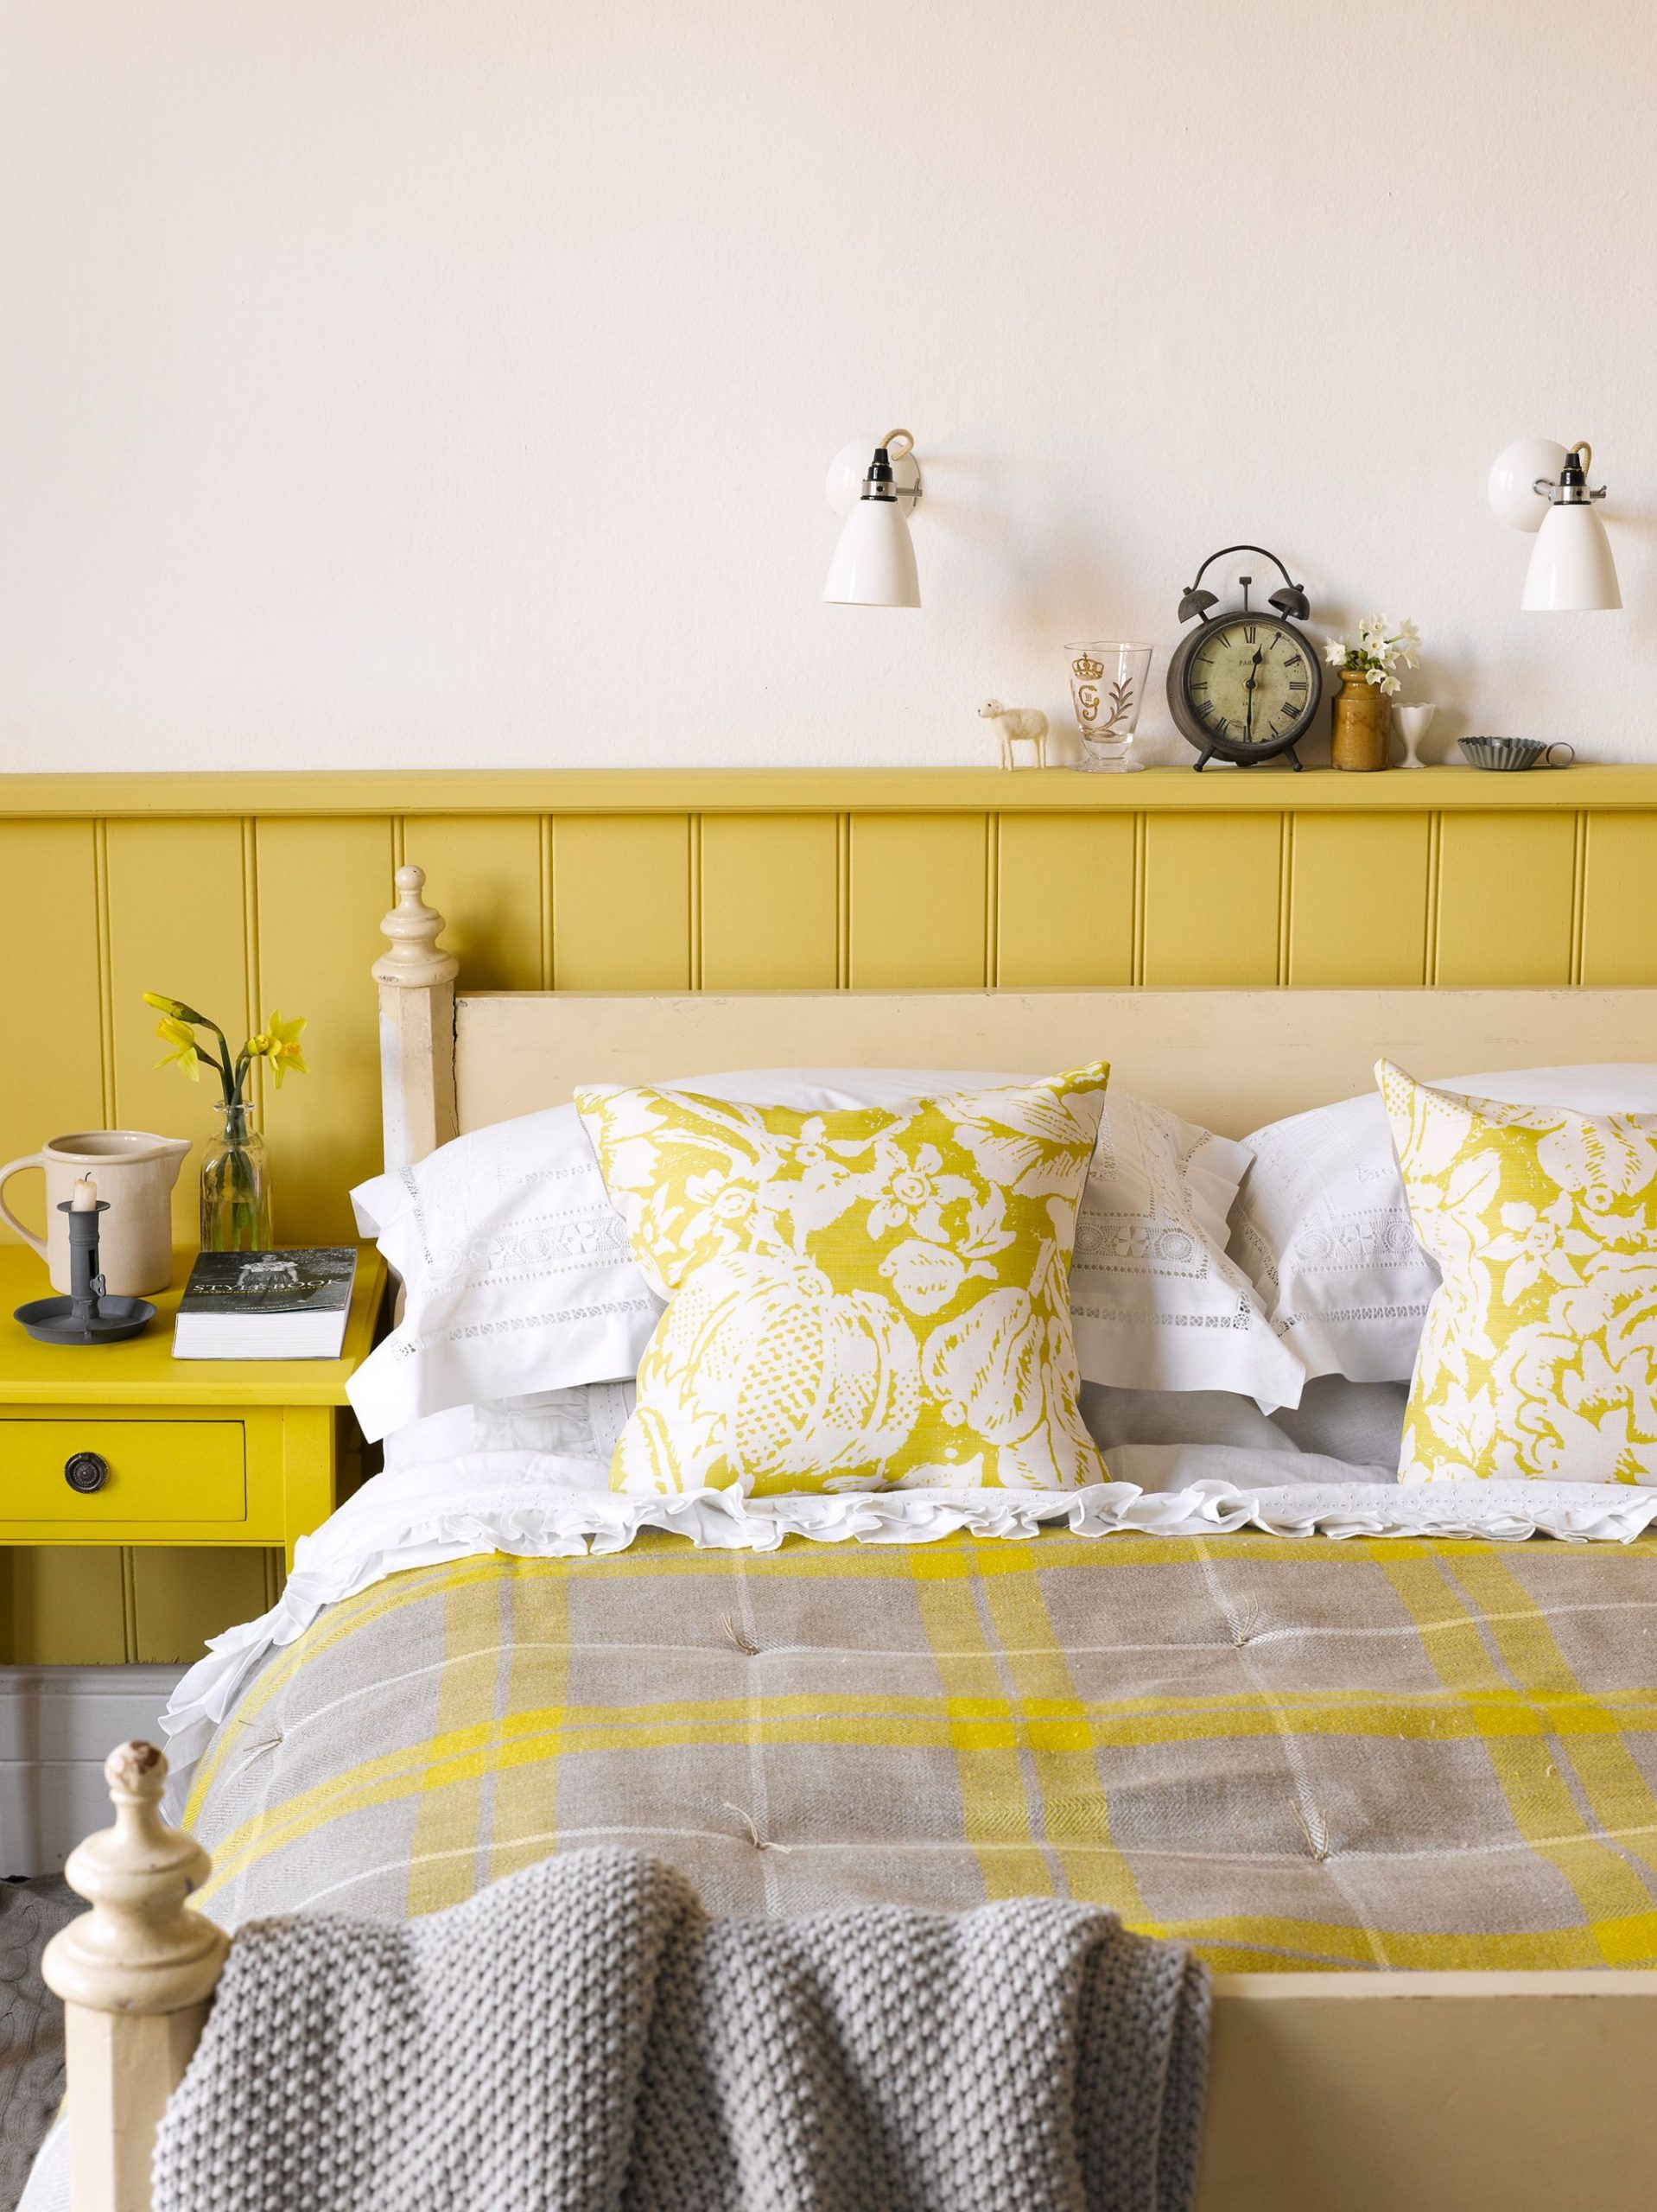 9 Cheerful Yellow Bedrooms - Chic Ideas for Yellow Bedroom Decor - Bedroom Ideas Yellow